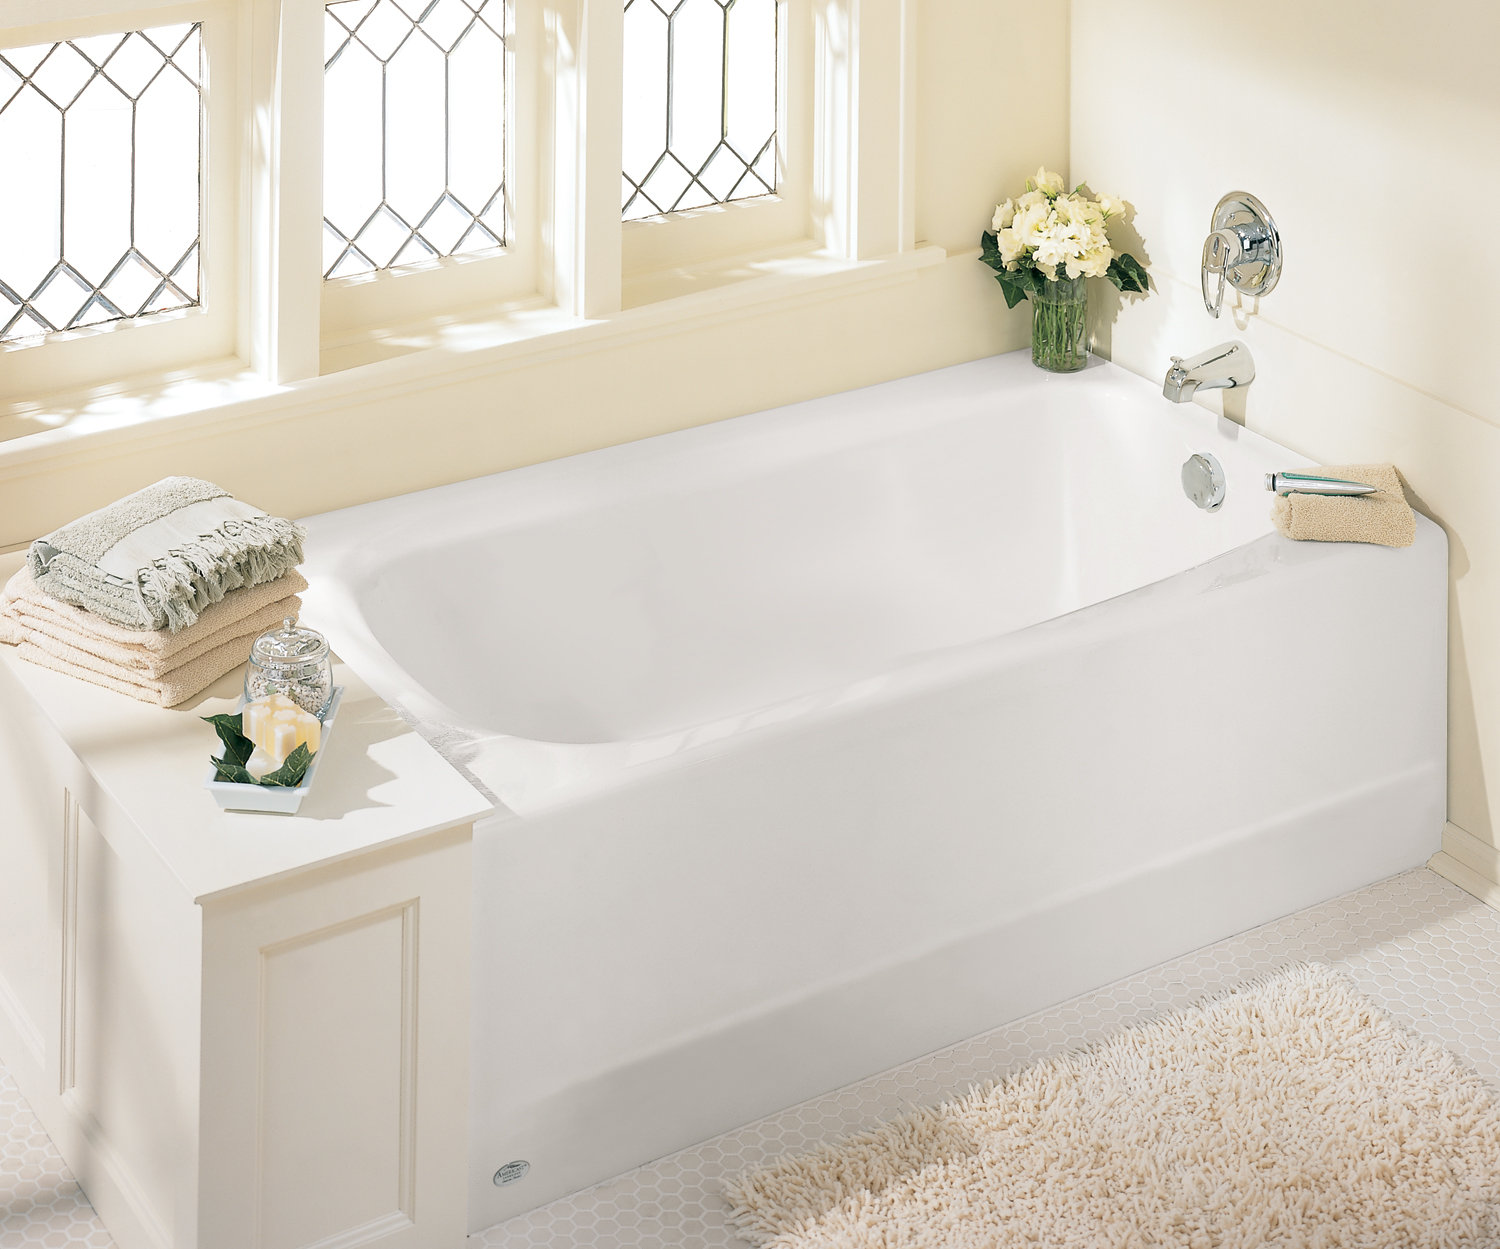 in maui porcelain tub soaking ft industries right drain bootz bathtubs p alcove white